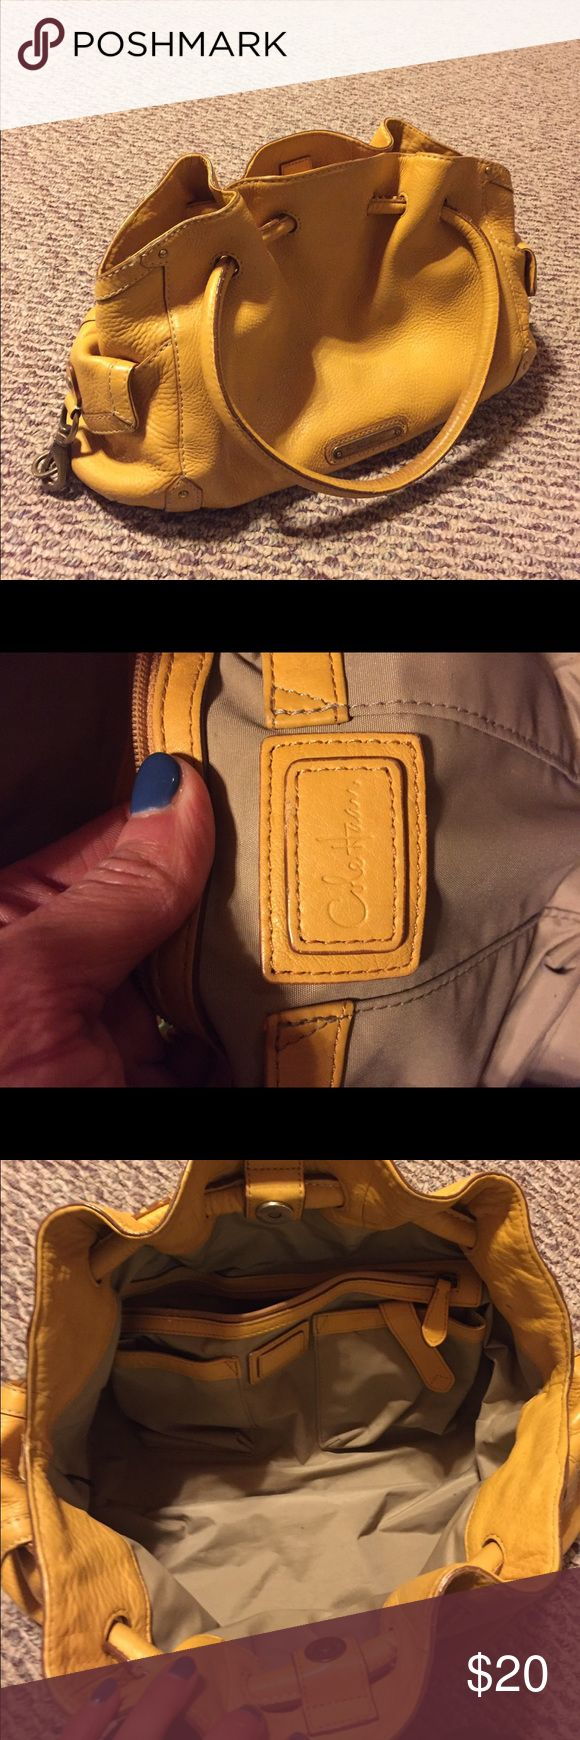 Designer Cole Haan mustard yellow purse! This designer Cole Haan mustard yellow satchel/shoulder purse is timeless. Good condition but the bottom could use some cleaning (pictured). Priced to sell Cole Haan Bags Shoulder Bags